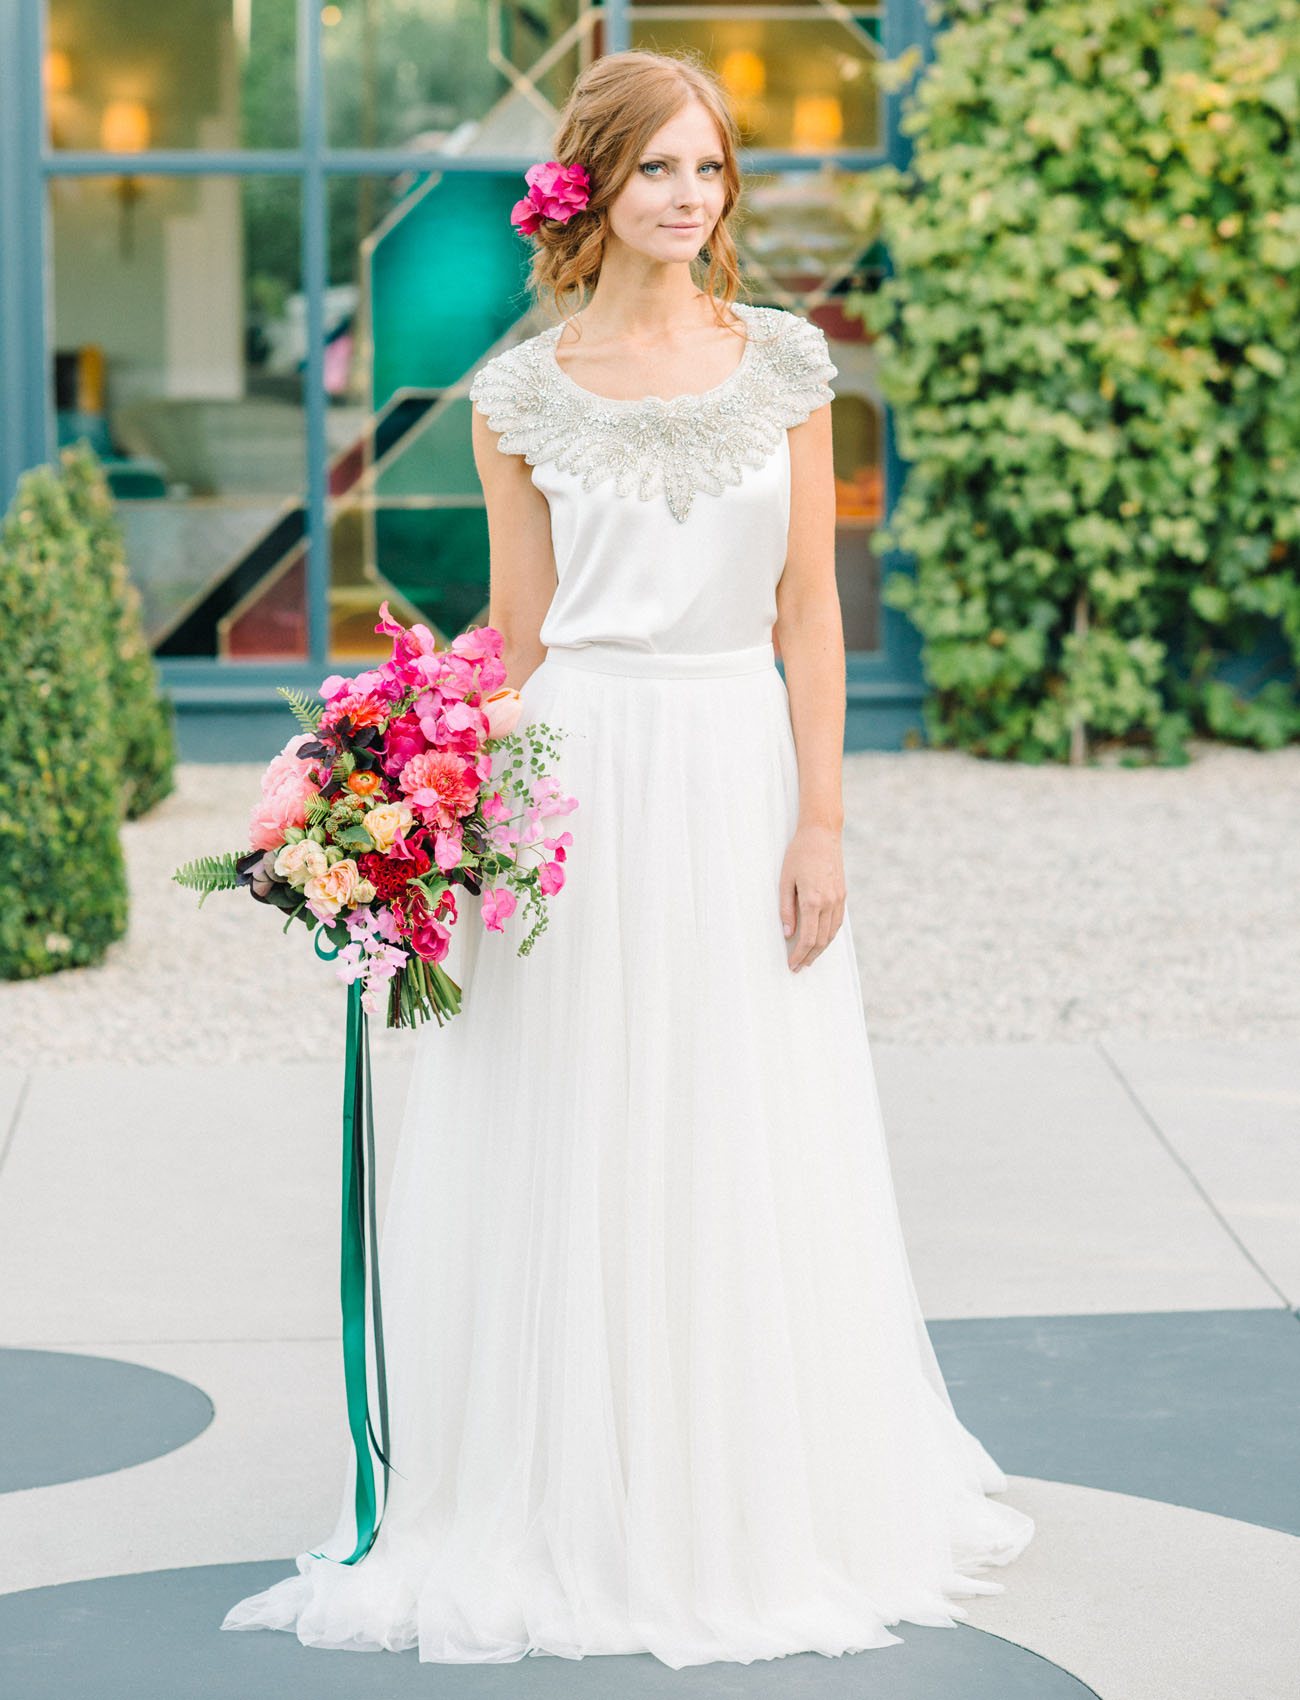 The bride was wearing a two piece dress, which is another hot trend, and the gown is beautifully embellished